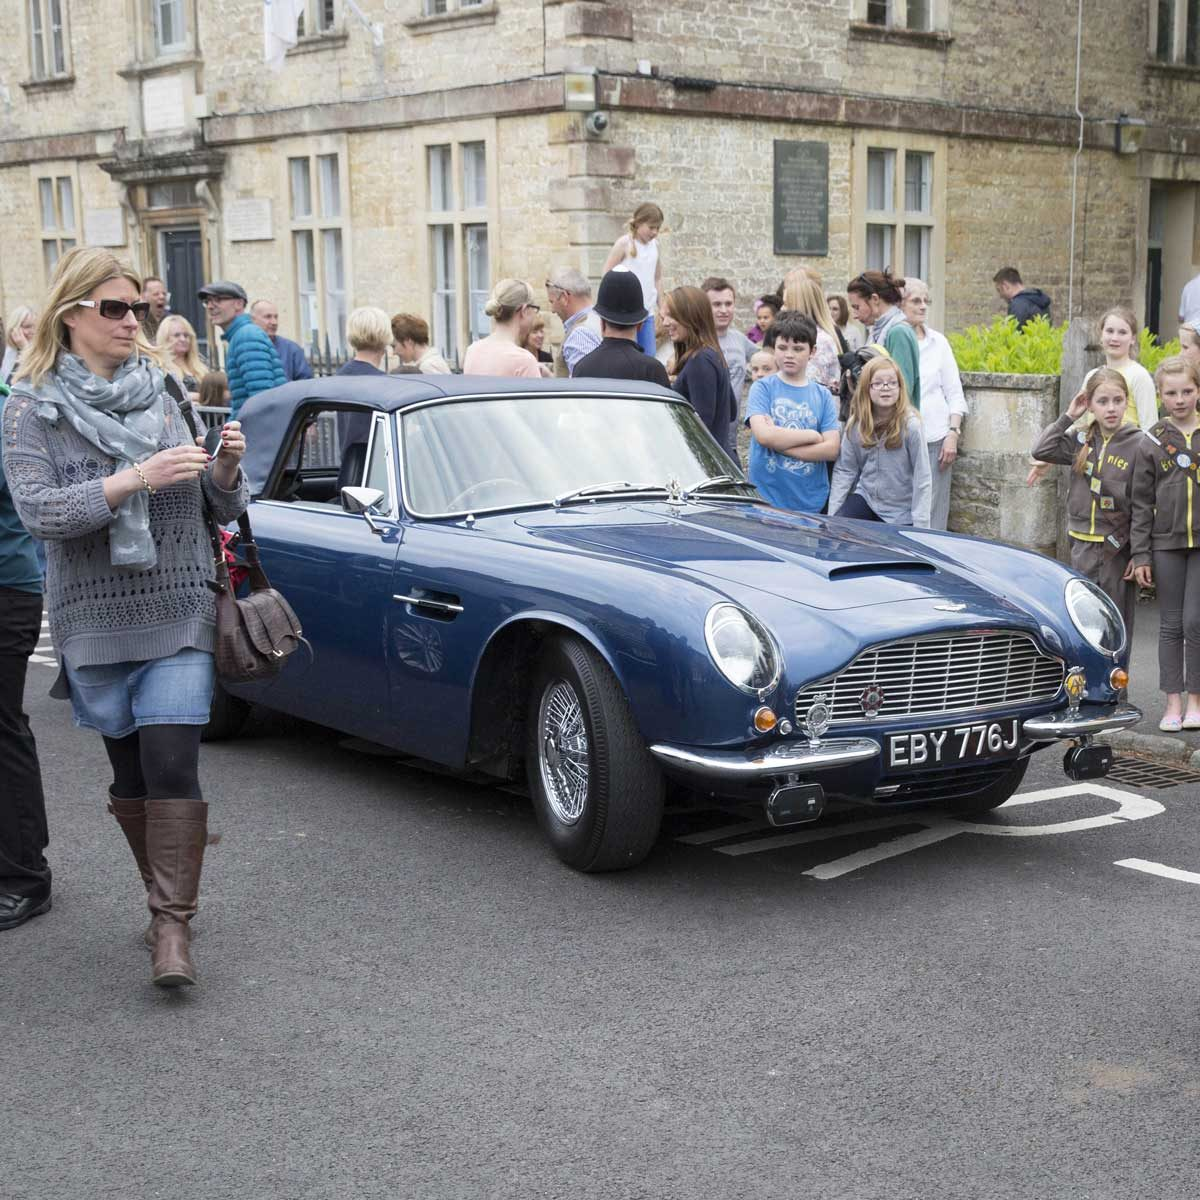 Prince Charles ' Aston Martin acts as a background for people to have their pictures taken standing next to it whilst the Prince was in the concert.